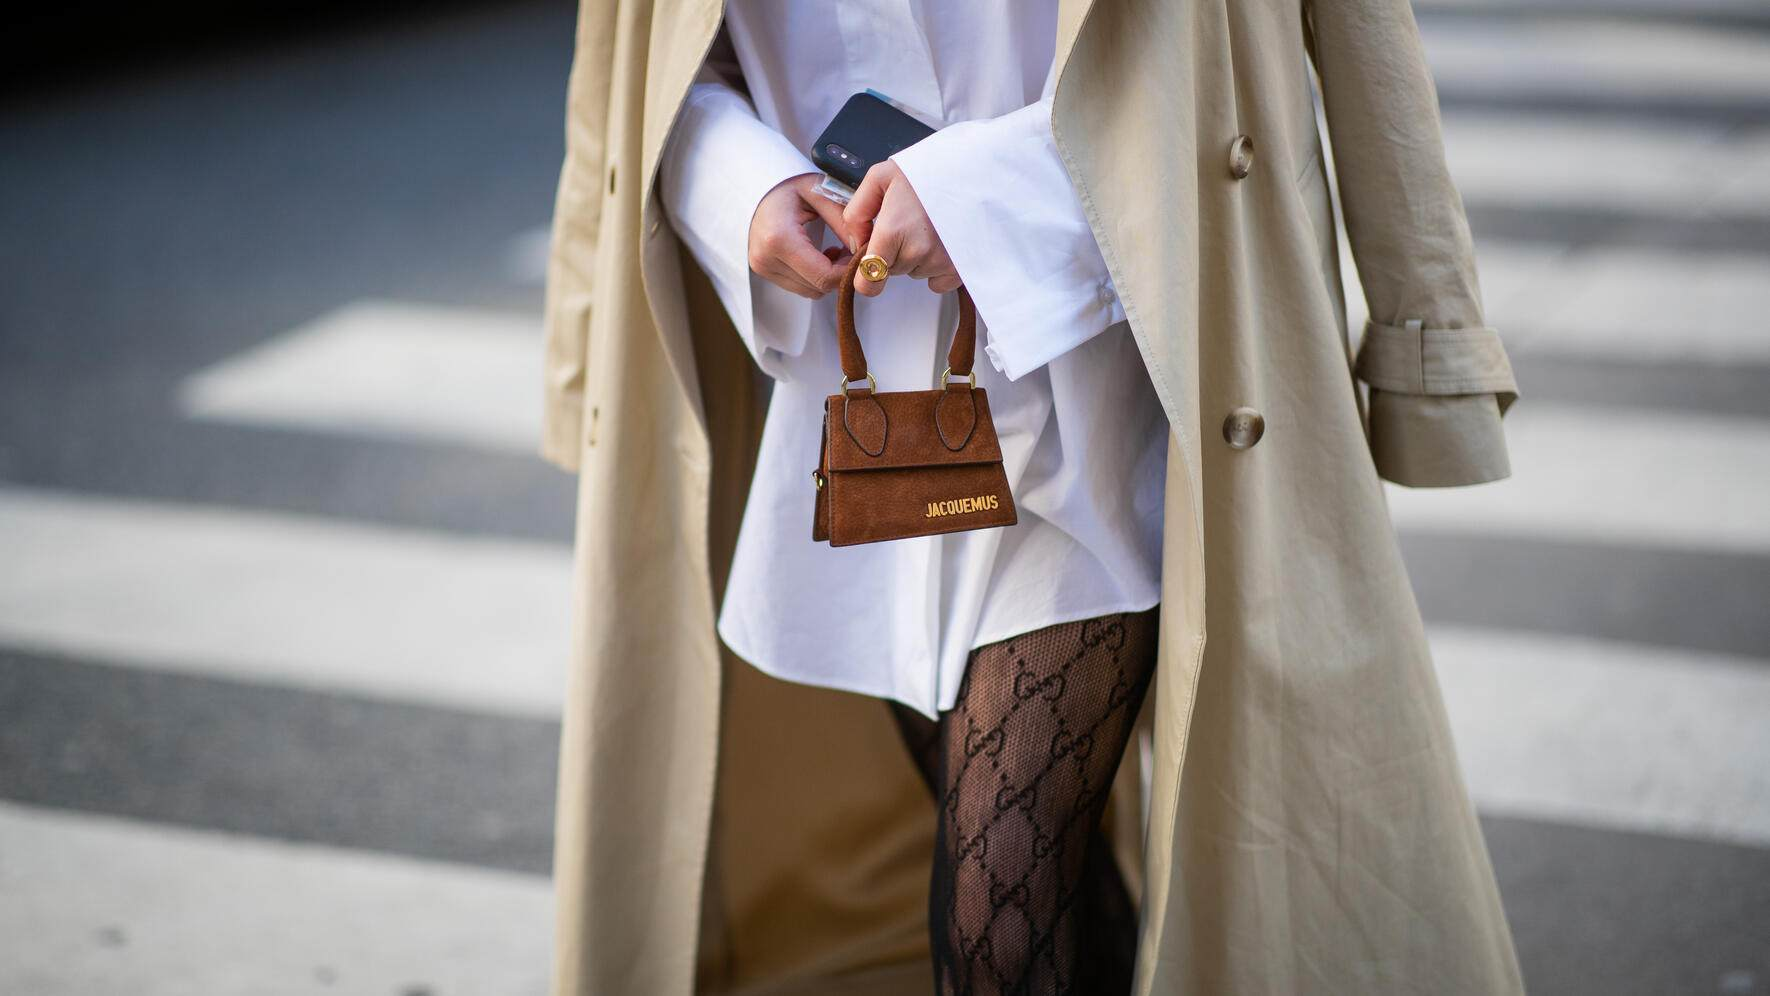 PARIS, FRANCE - JANUARY 20: Tiffany Hsu is seen wearing pink mini Jacquemus bag, beige suit, purple velvet heels utside Acne during Paris Fashion Week - Menswear F/W 2019-2020 Day Six on January 20, 2019 in Paris, France. (Photo by Christian Vierig/Getty Images)